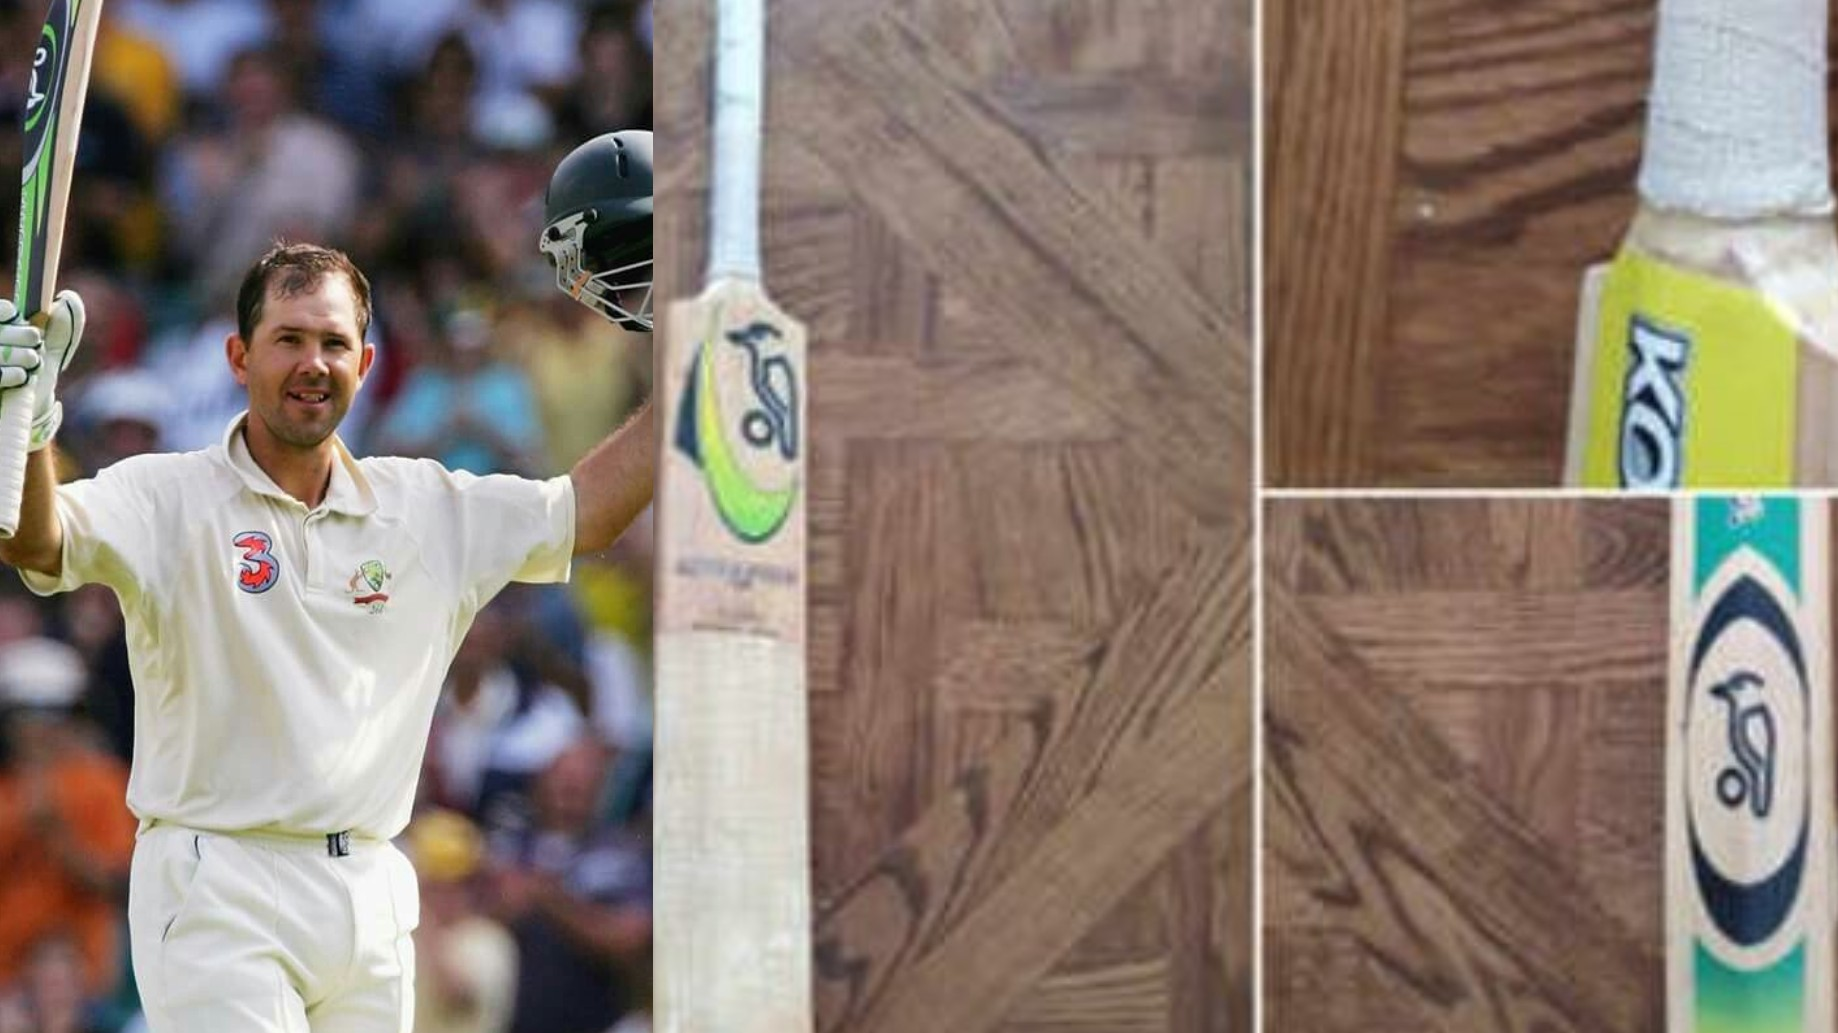 Ricky Ponting shares images of his favorite bat with which he scored five international centuries